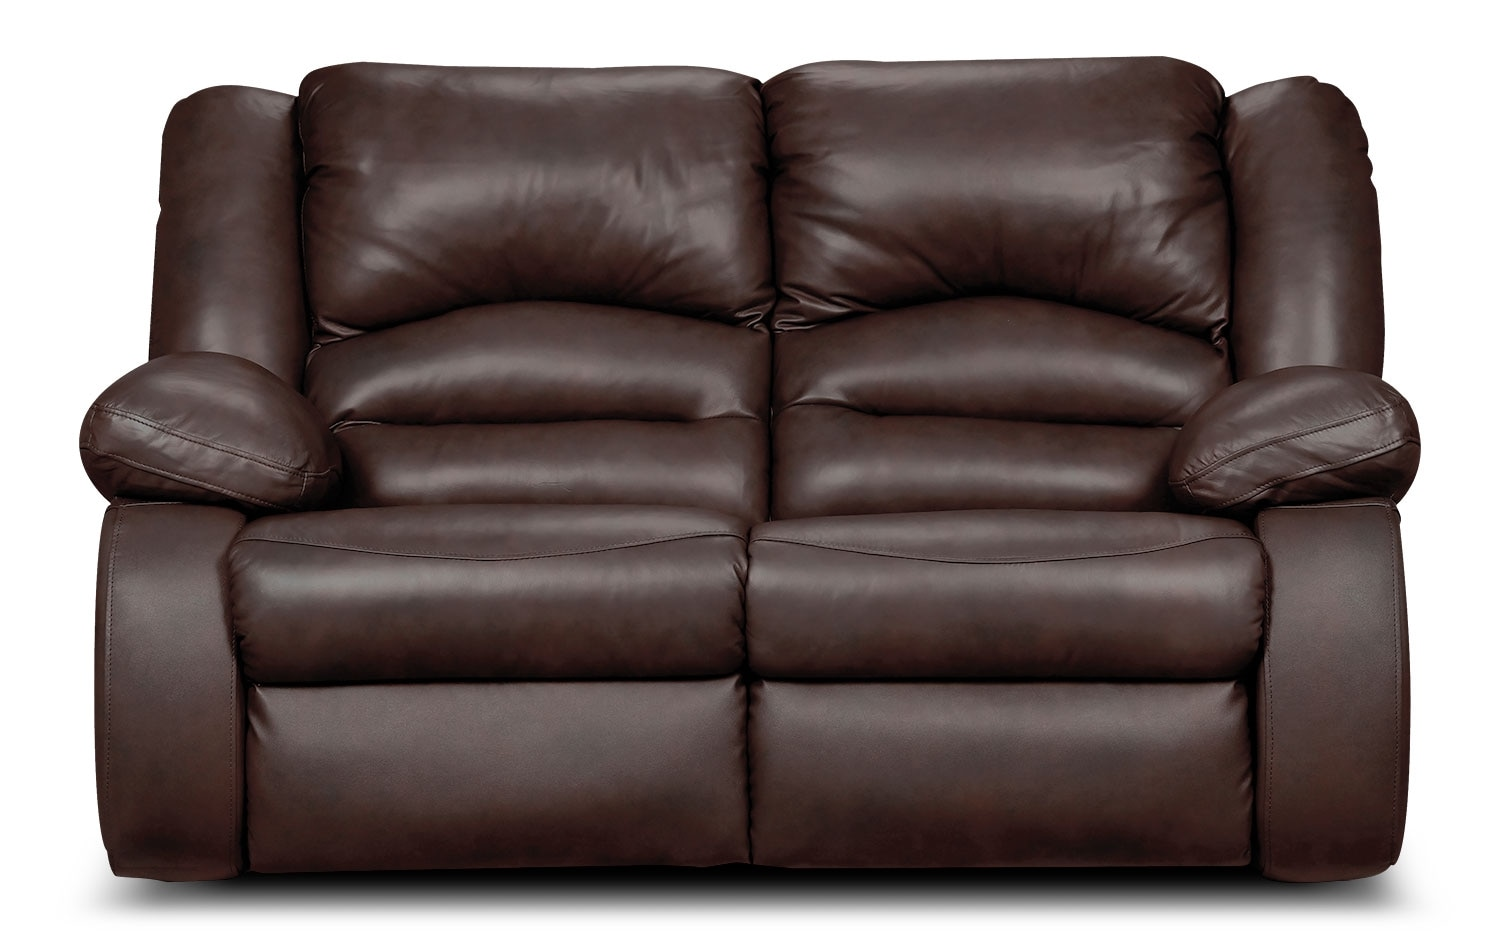 genuine leather chair affordable covers for hire toreno power reclining  brown the